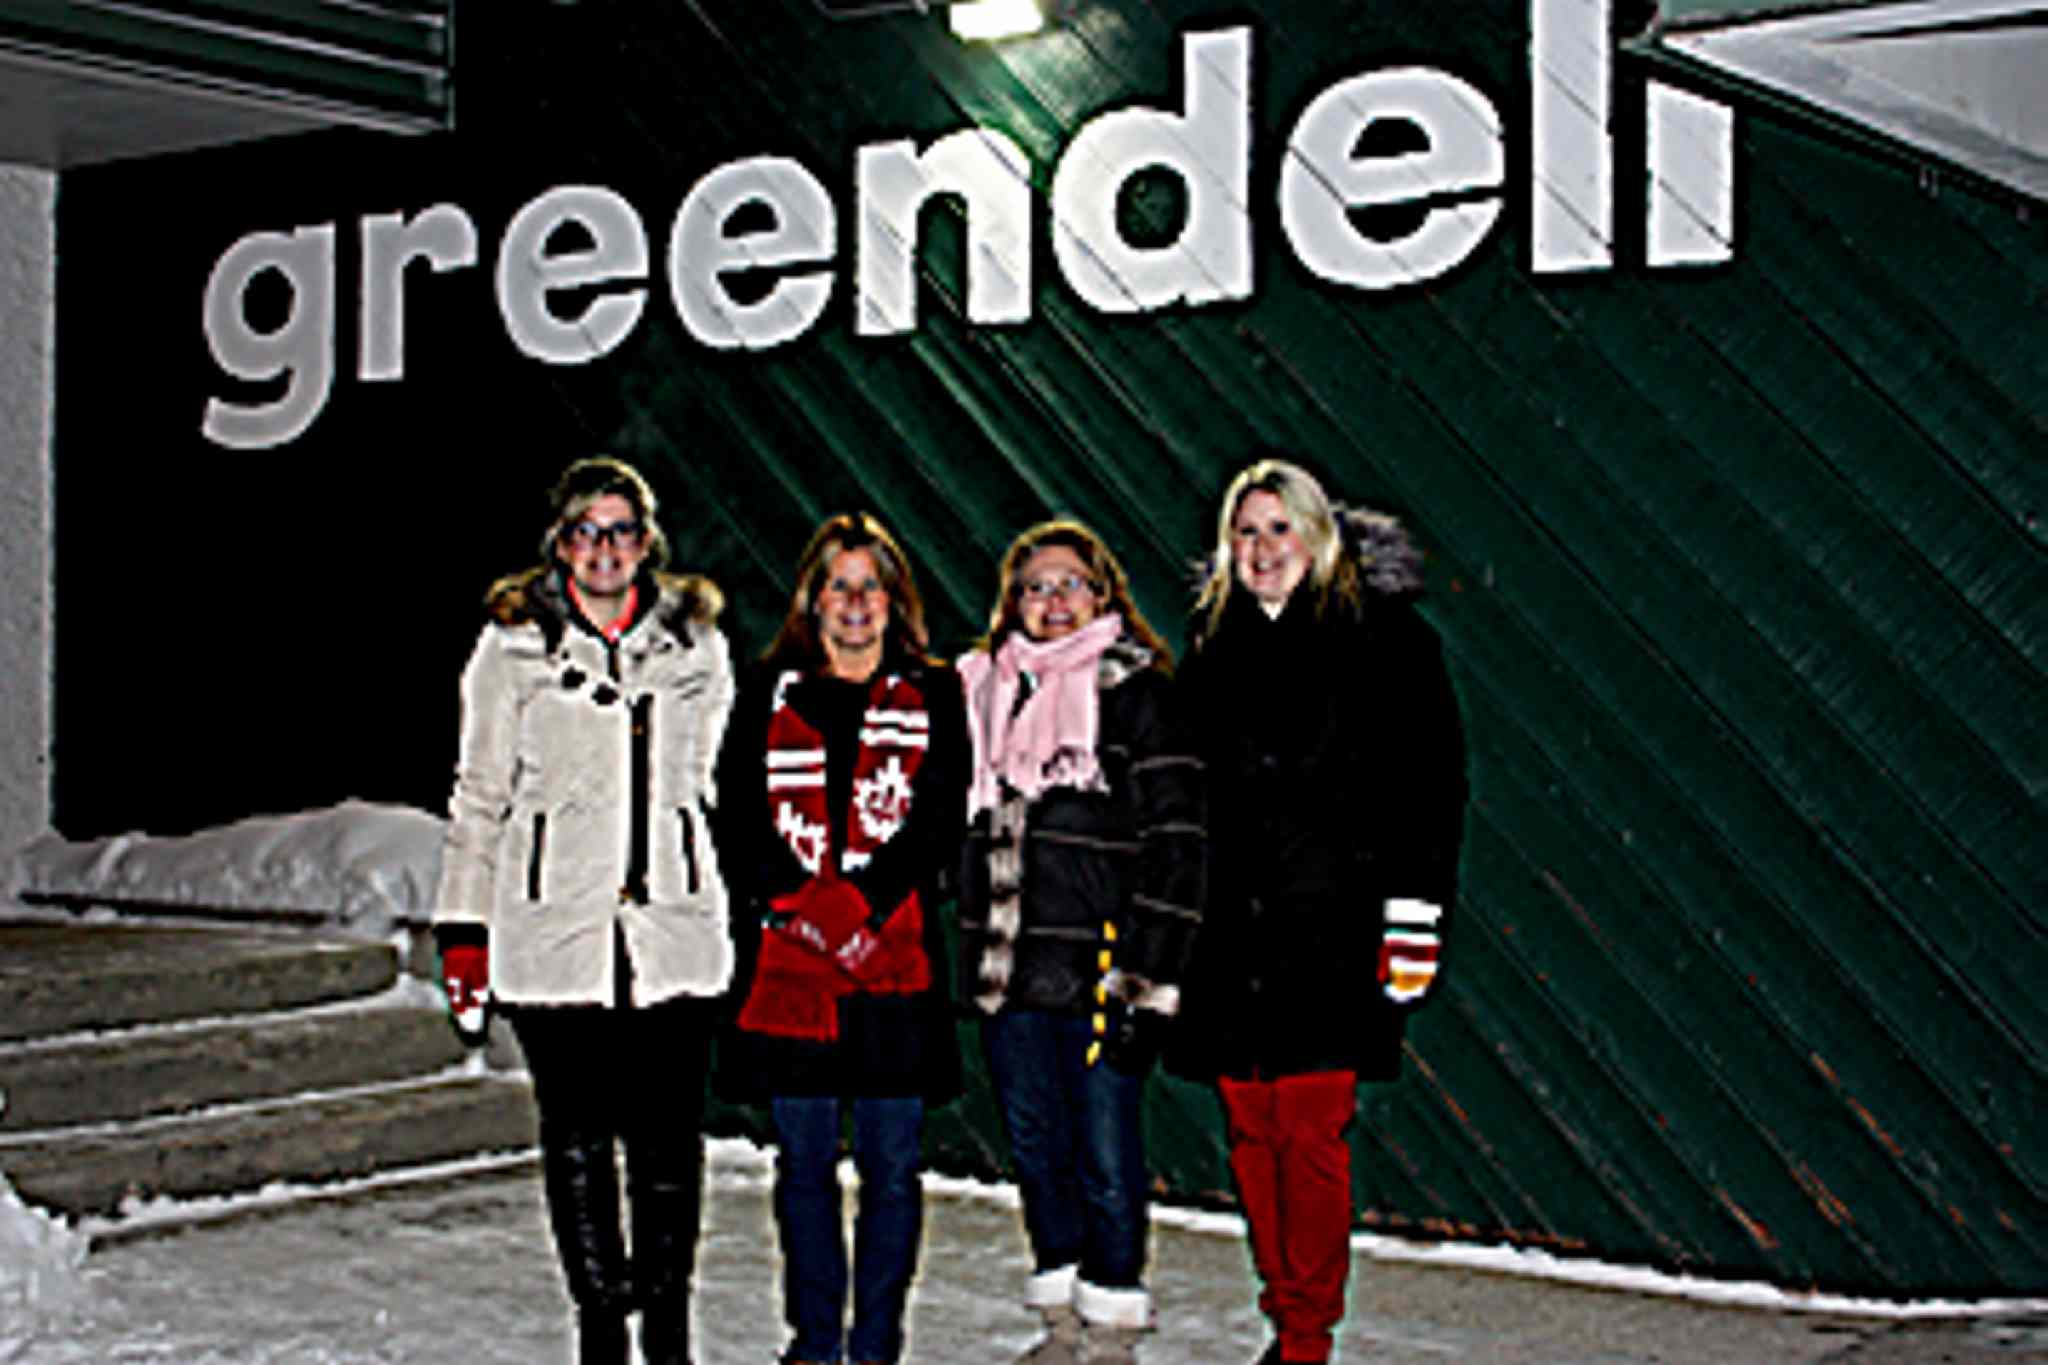 Left to Right -- Greendell Winter Carnival Committee - Jennifer Trach, Brenda Trach, Monika Carswell and Kirsten Meikle.